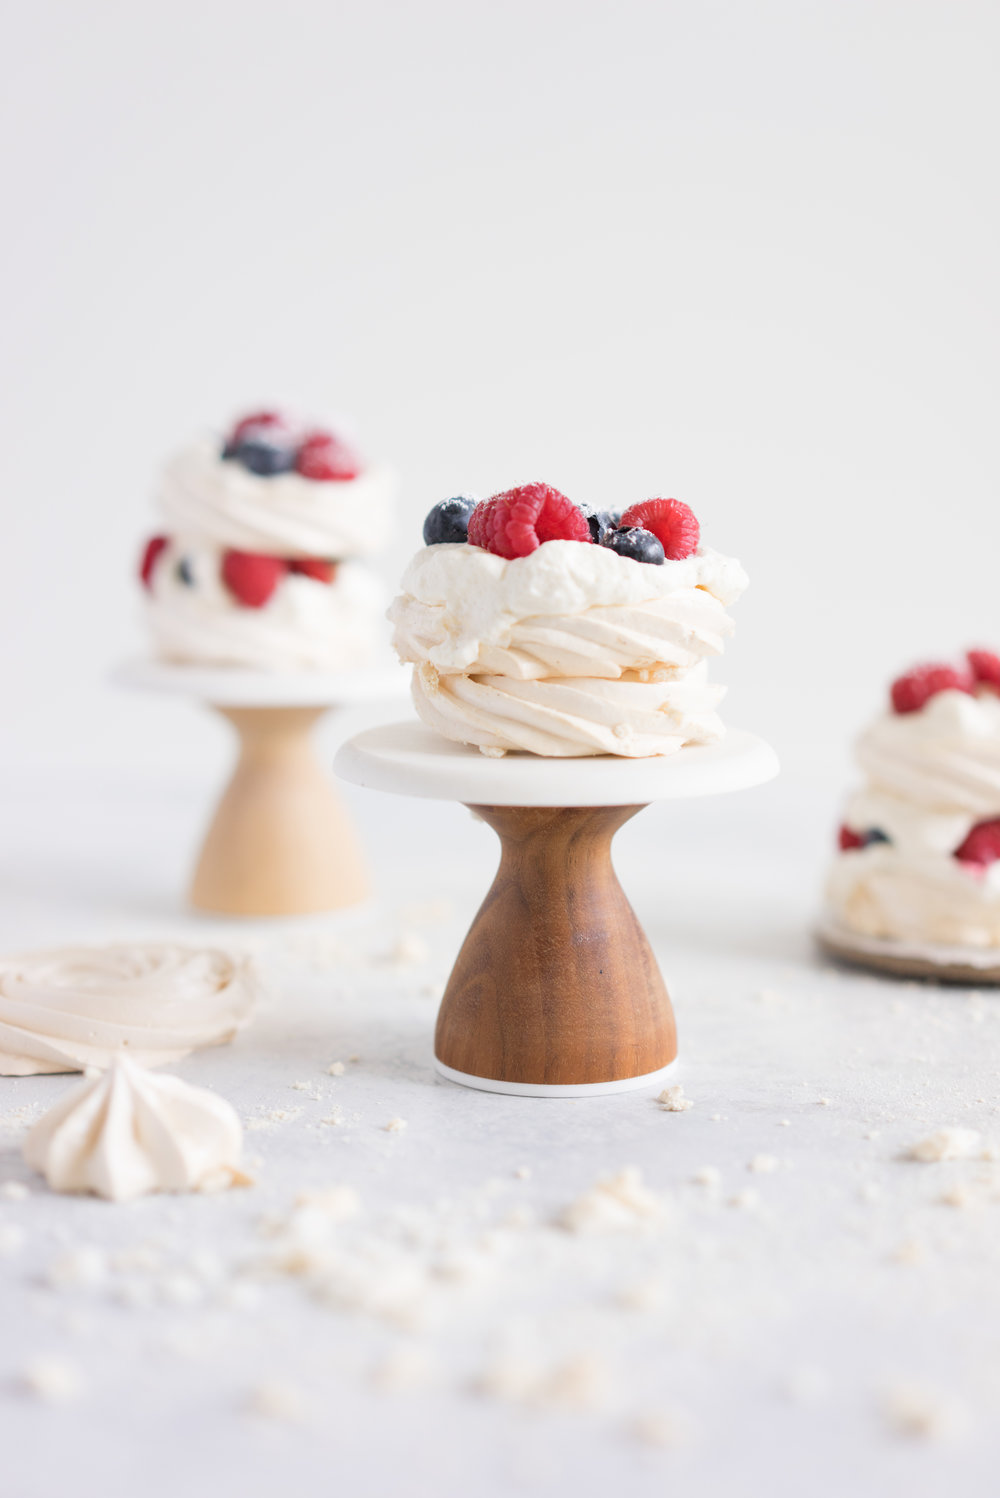 Meringue stacks with vanilla bean mascarpone whipped cream and fresh berries